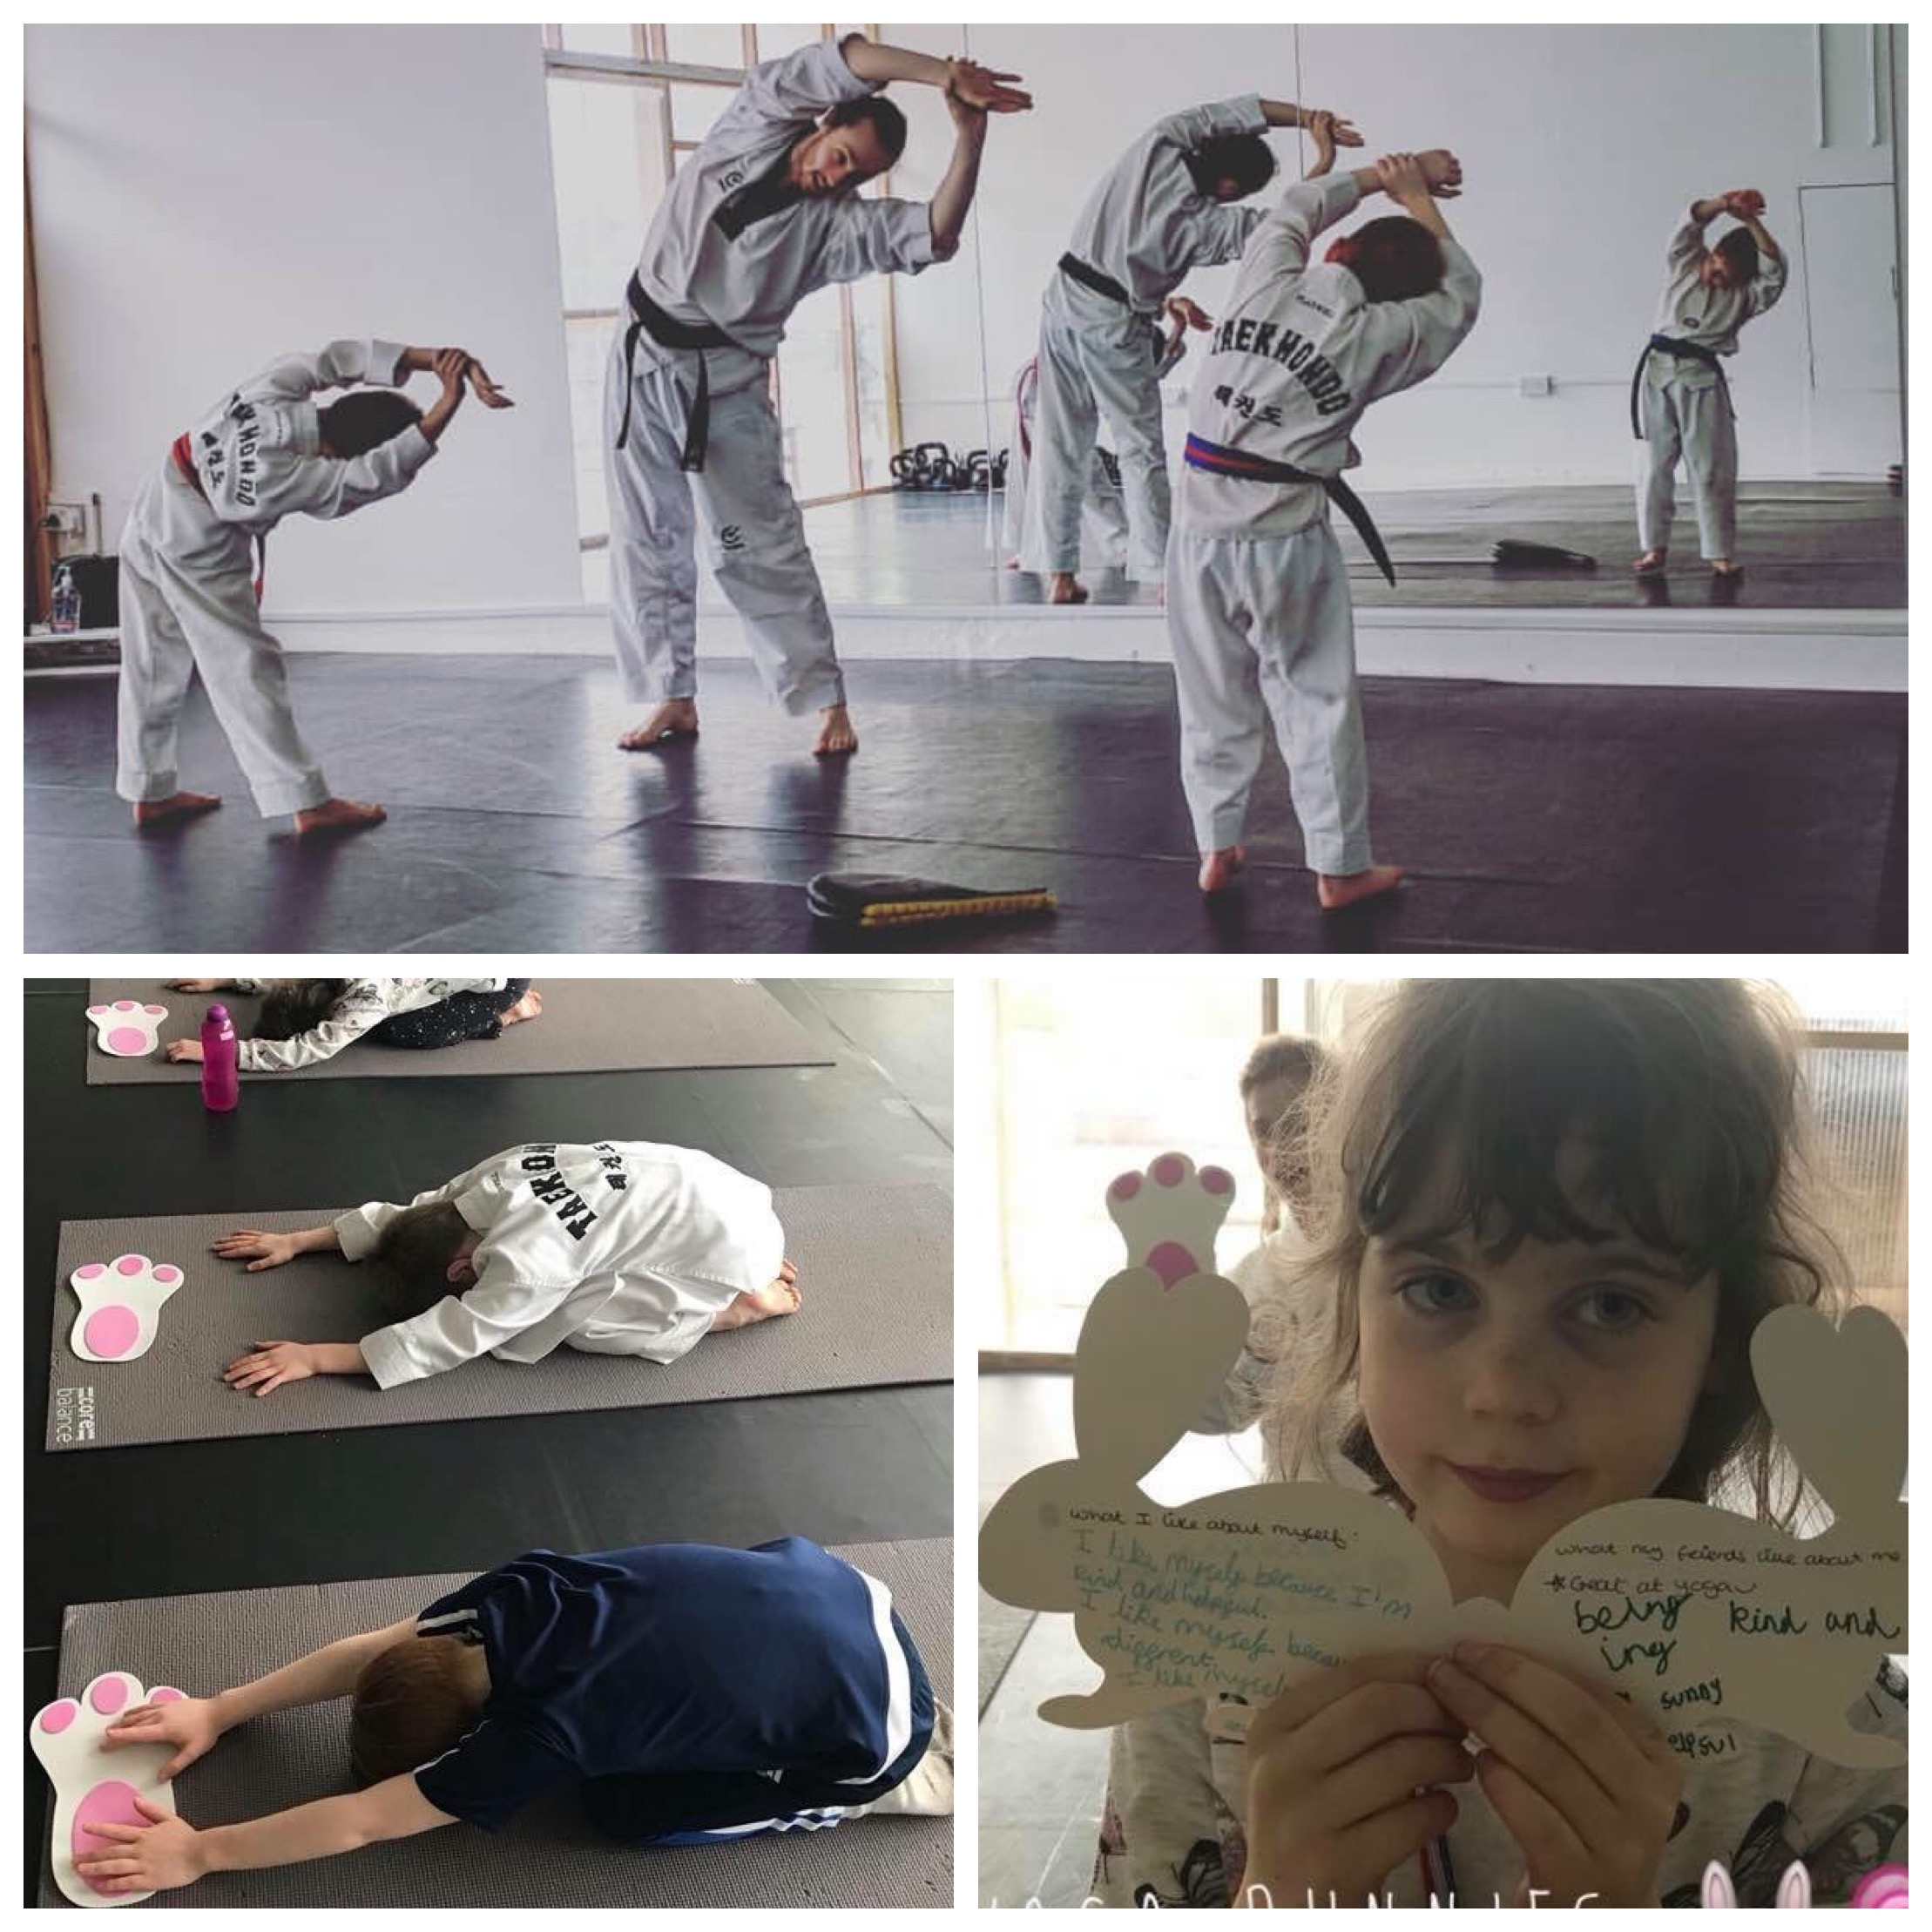 Easter Holidays 2018: Taekwondo and Yoga - In the Easter Holidays we welcomed Titan Taekwondo Academy and Yoga Bunny's Yoga for kids into our studio! As well as burning off lots of Easter Egg fuelled energy, the kids also learnt Taekwondo techniques and why discipline is important, and Yoga stretches and poses and techniques to cope with anxiety and stress.